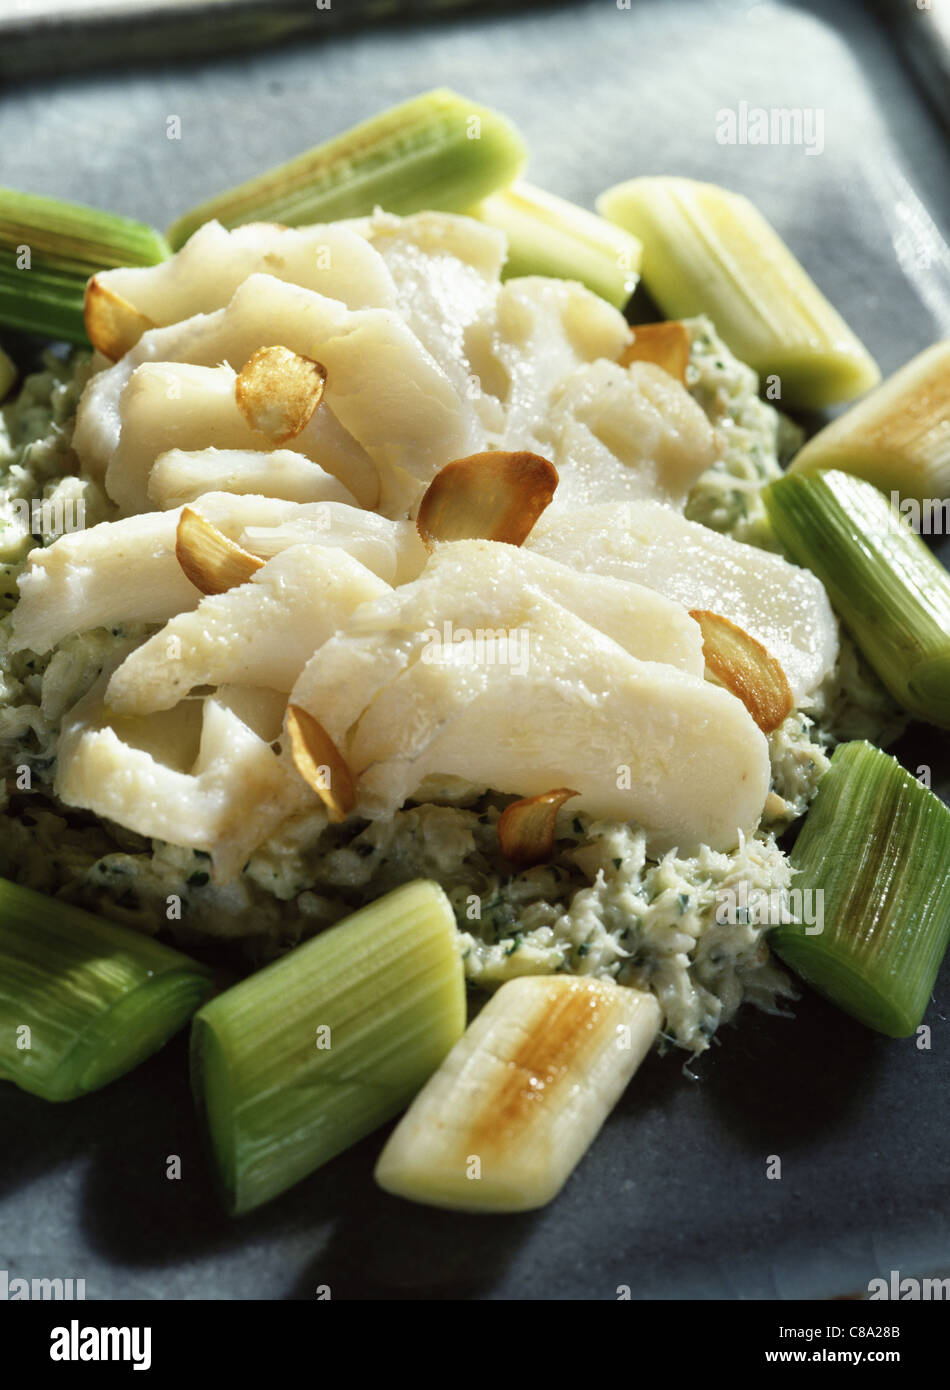 Cod with preserved leeks - Stock Image